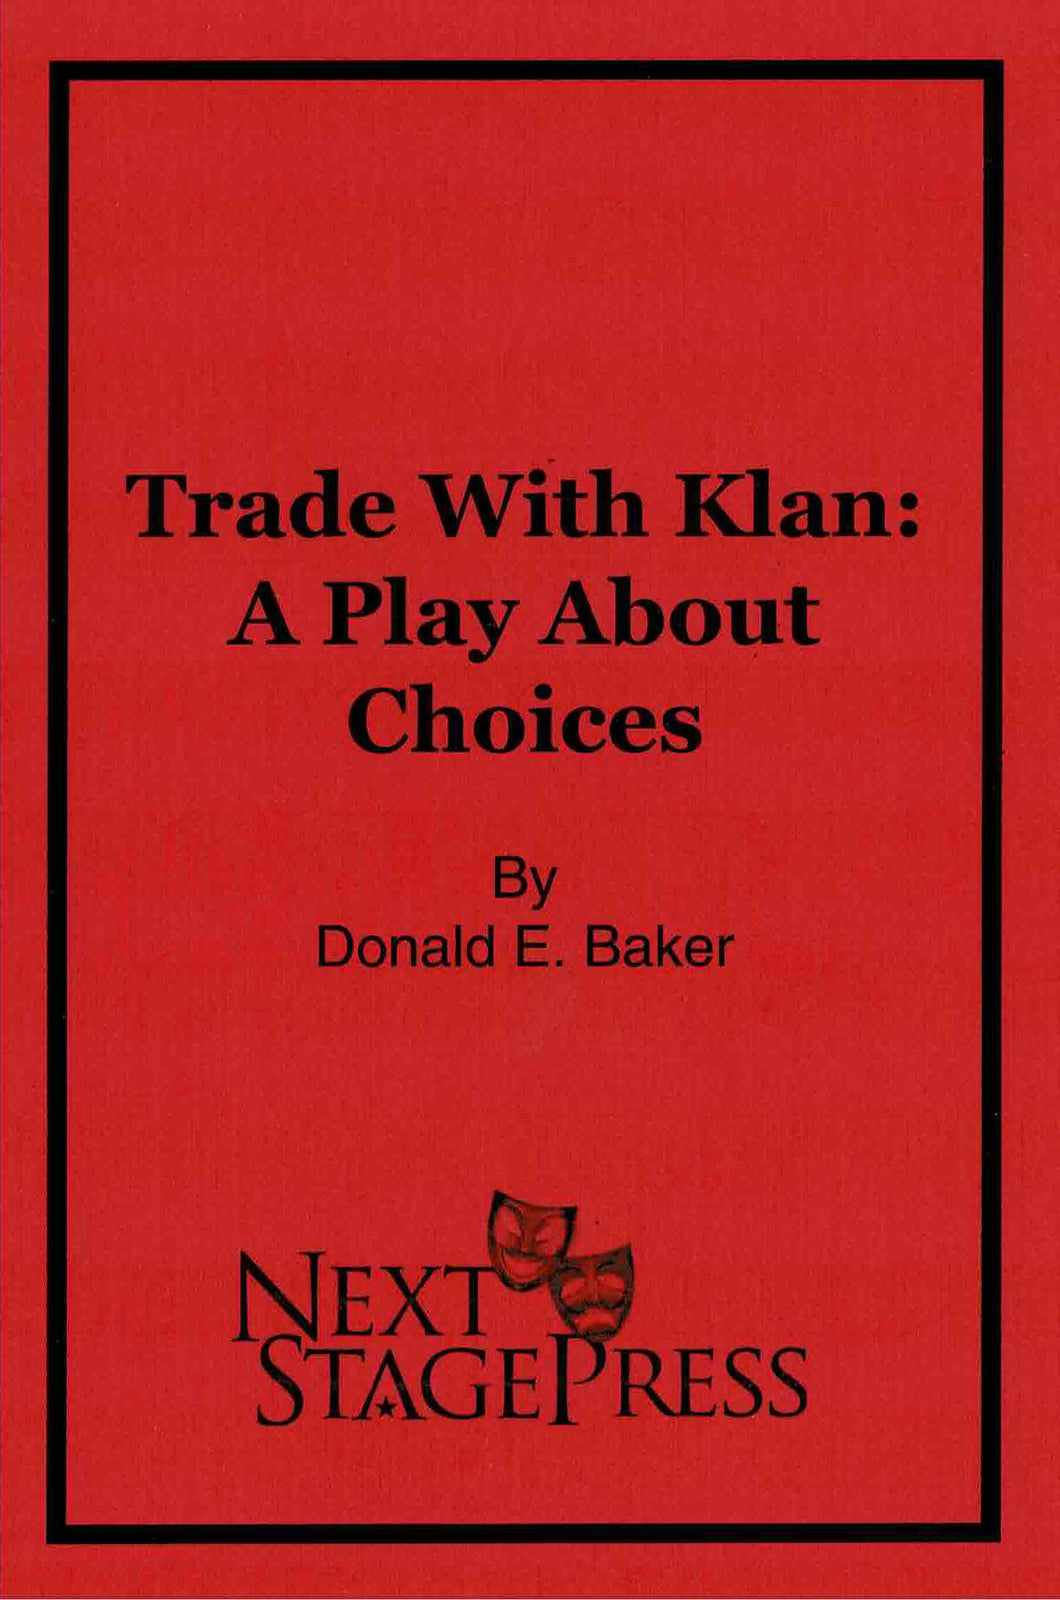 Trade With Klan: A Play About Choices - Digital Version